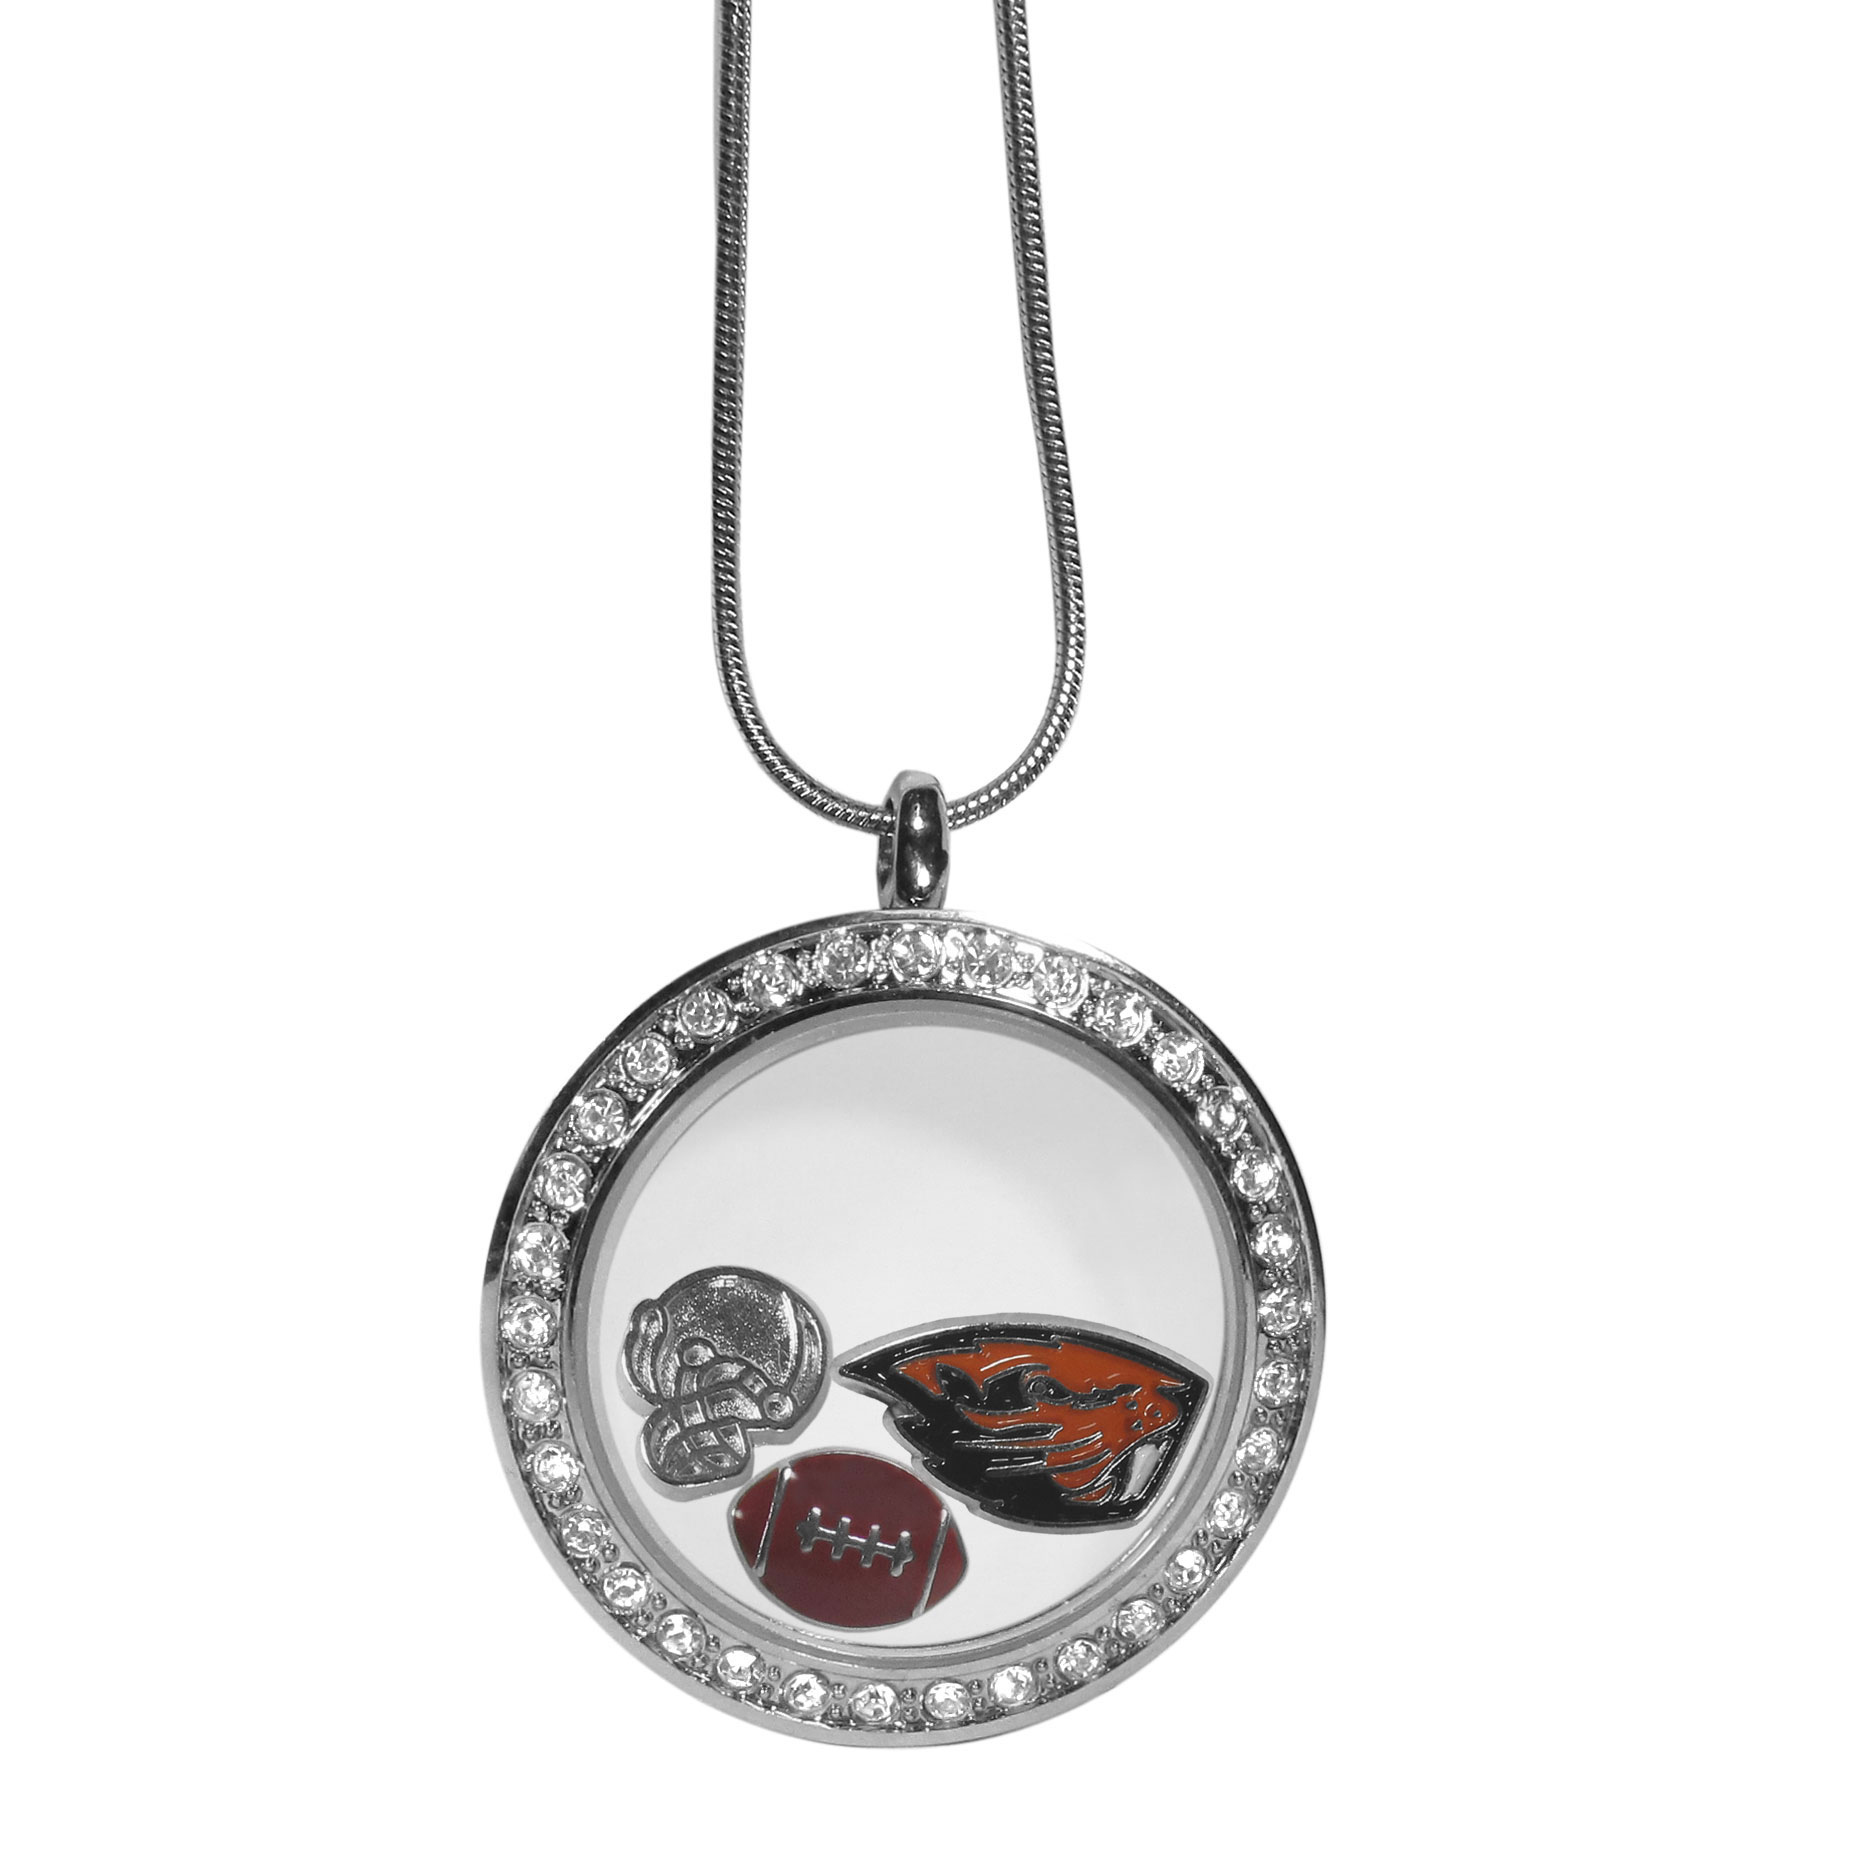 Oregon St. Beavers Locket Necklace - We have taken the classic floating charm locket and combined with licensed sports charms to create a must have fan necklace. The necklace comes with 3 charms; 1 Oregon St. Beavers charm, one football charm and one helmet charm. The charms float in a beautiful locket that has a strong magnetic closure with a rhinestone border. The locket comes on an 18 inch snake chain with 2 inch extender.